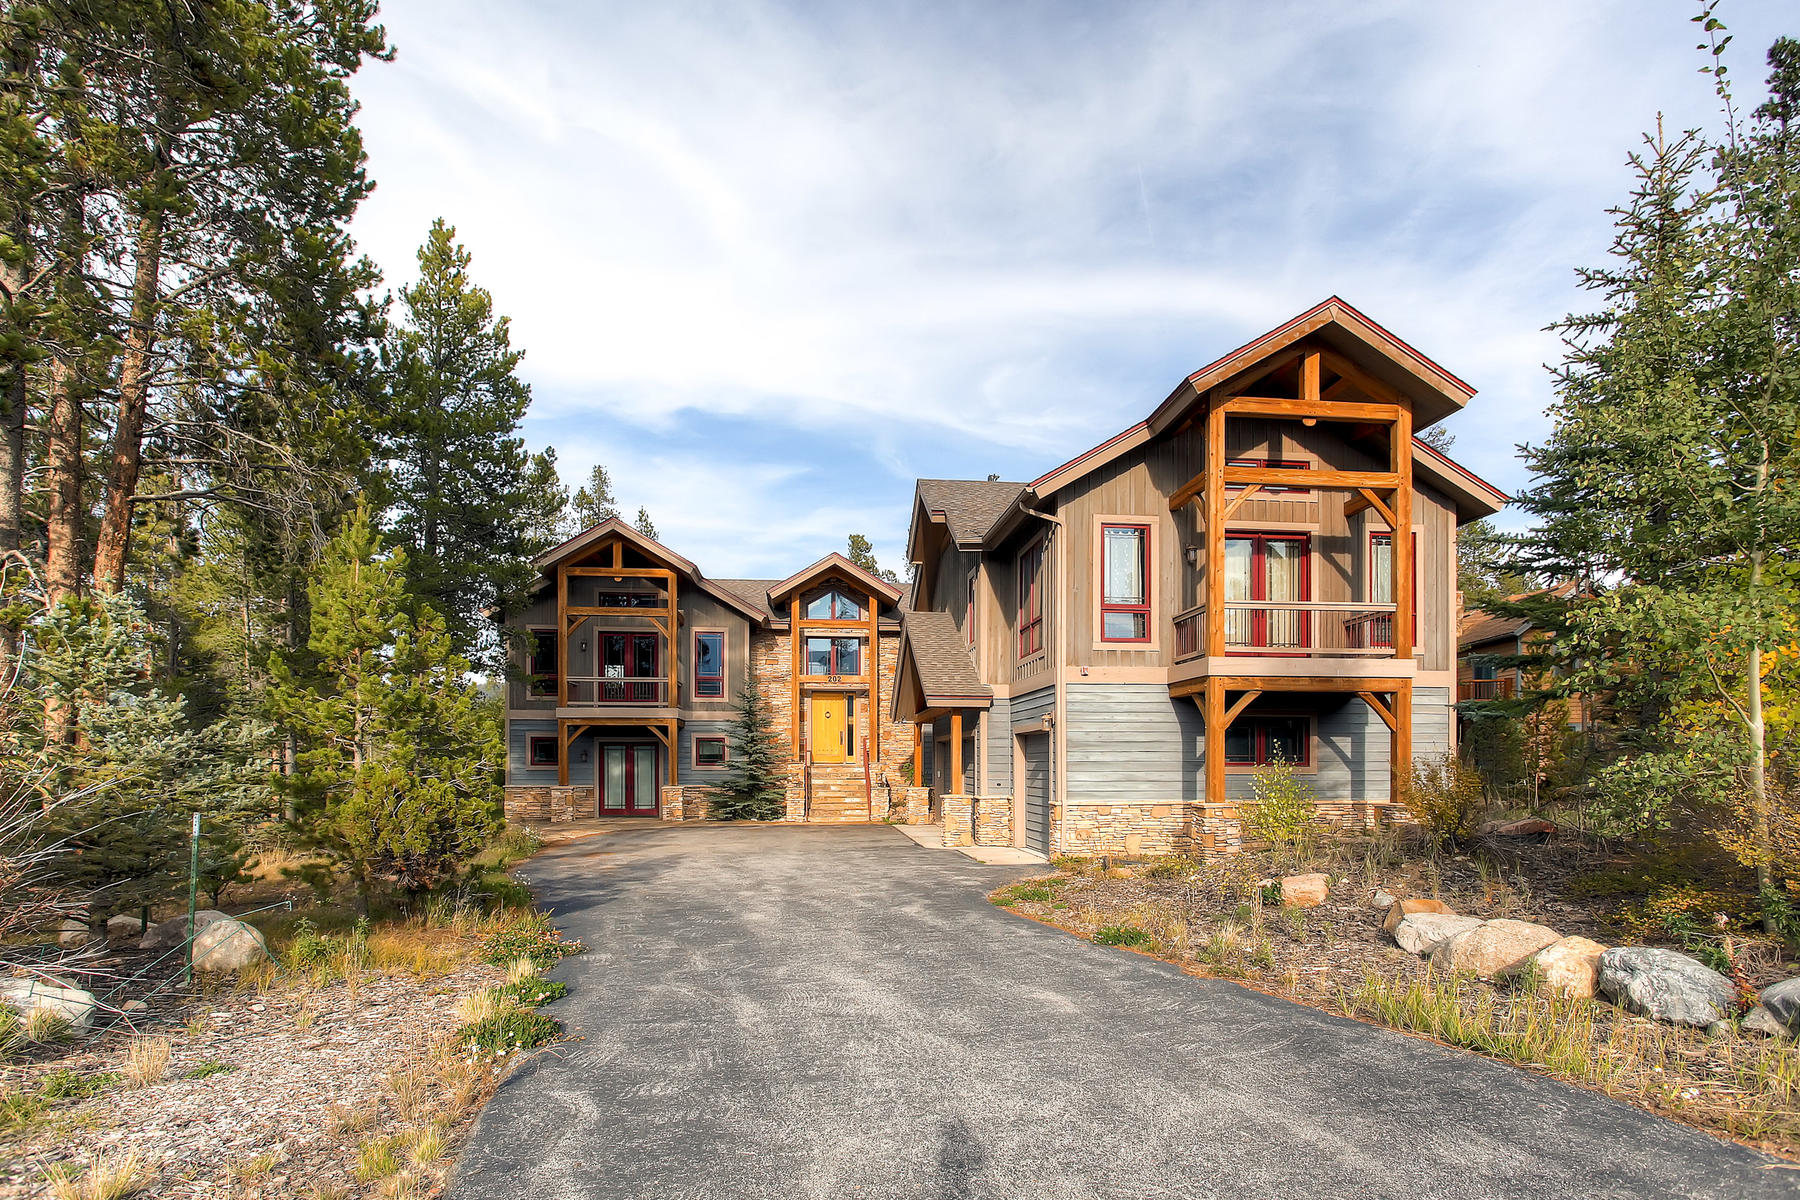 Single Family Home for Active at Marksberry Way 202 Marksberry Way Breckenridge, Colorado 80424 United States